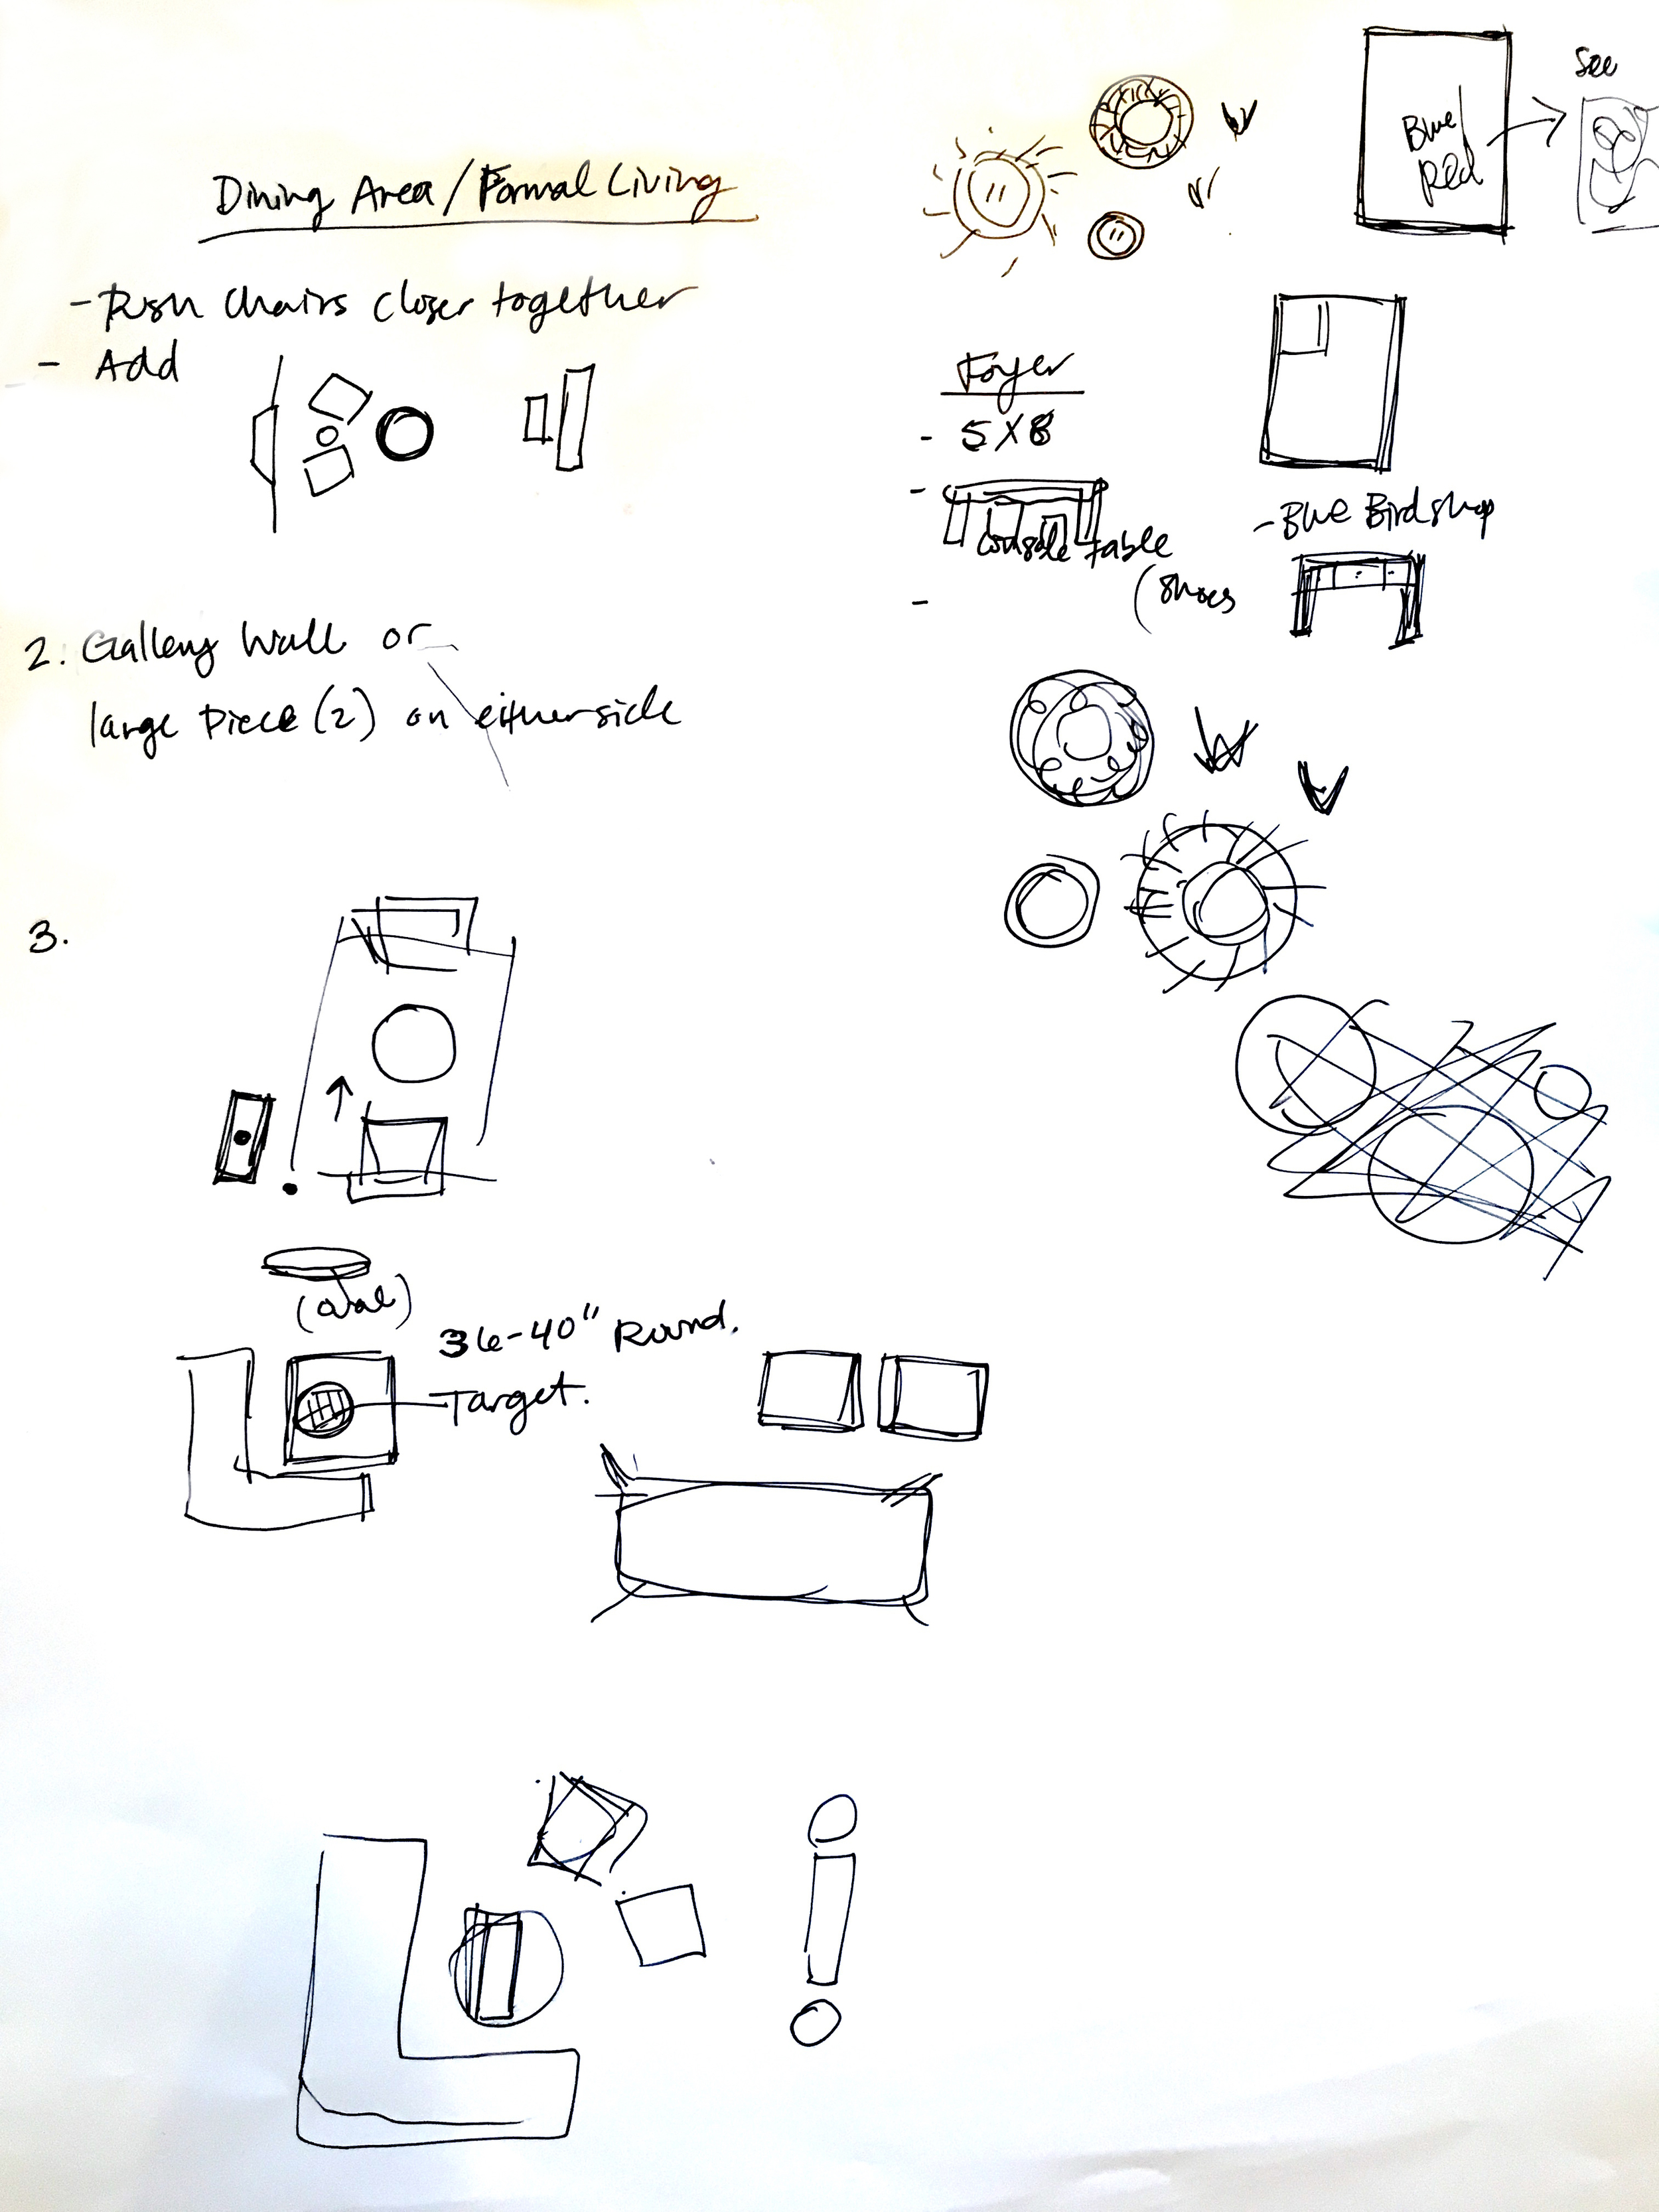 Quick notes I made during our virtual session